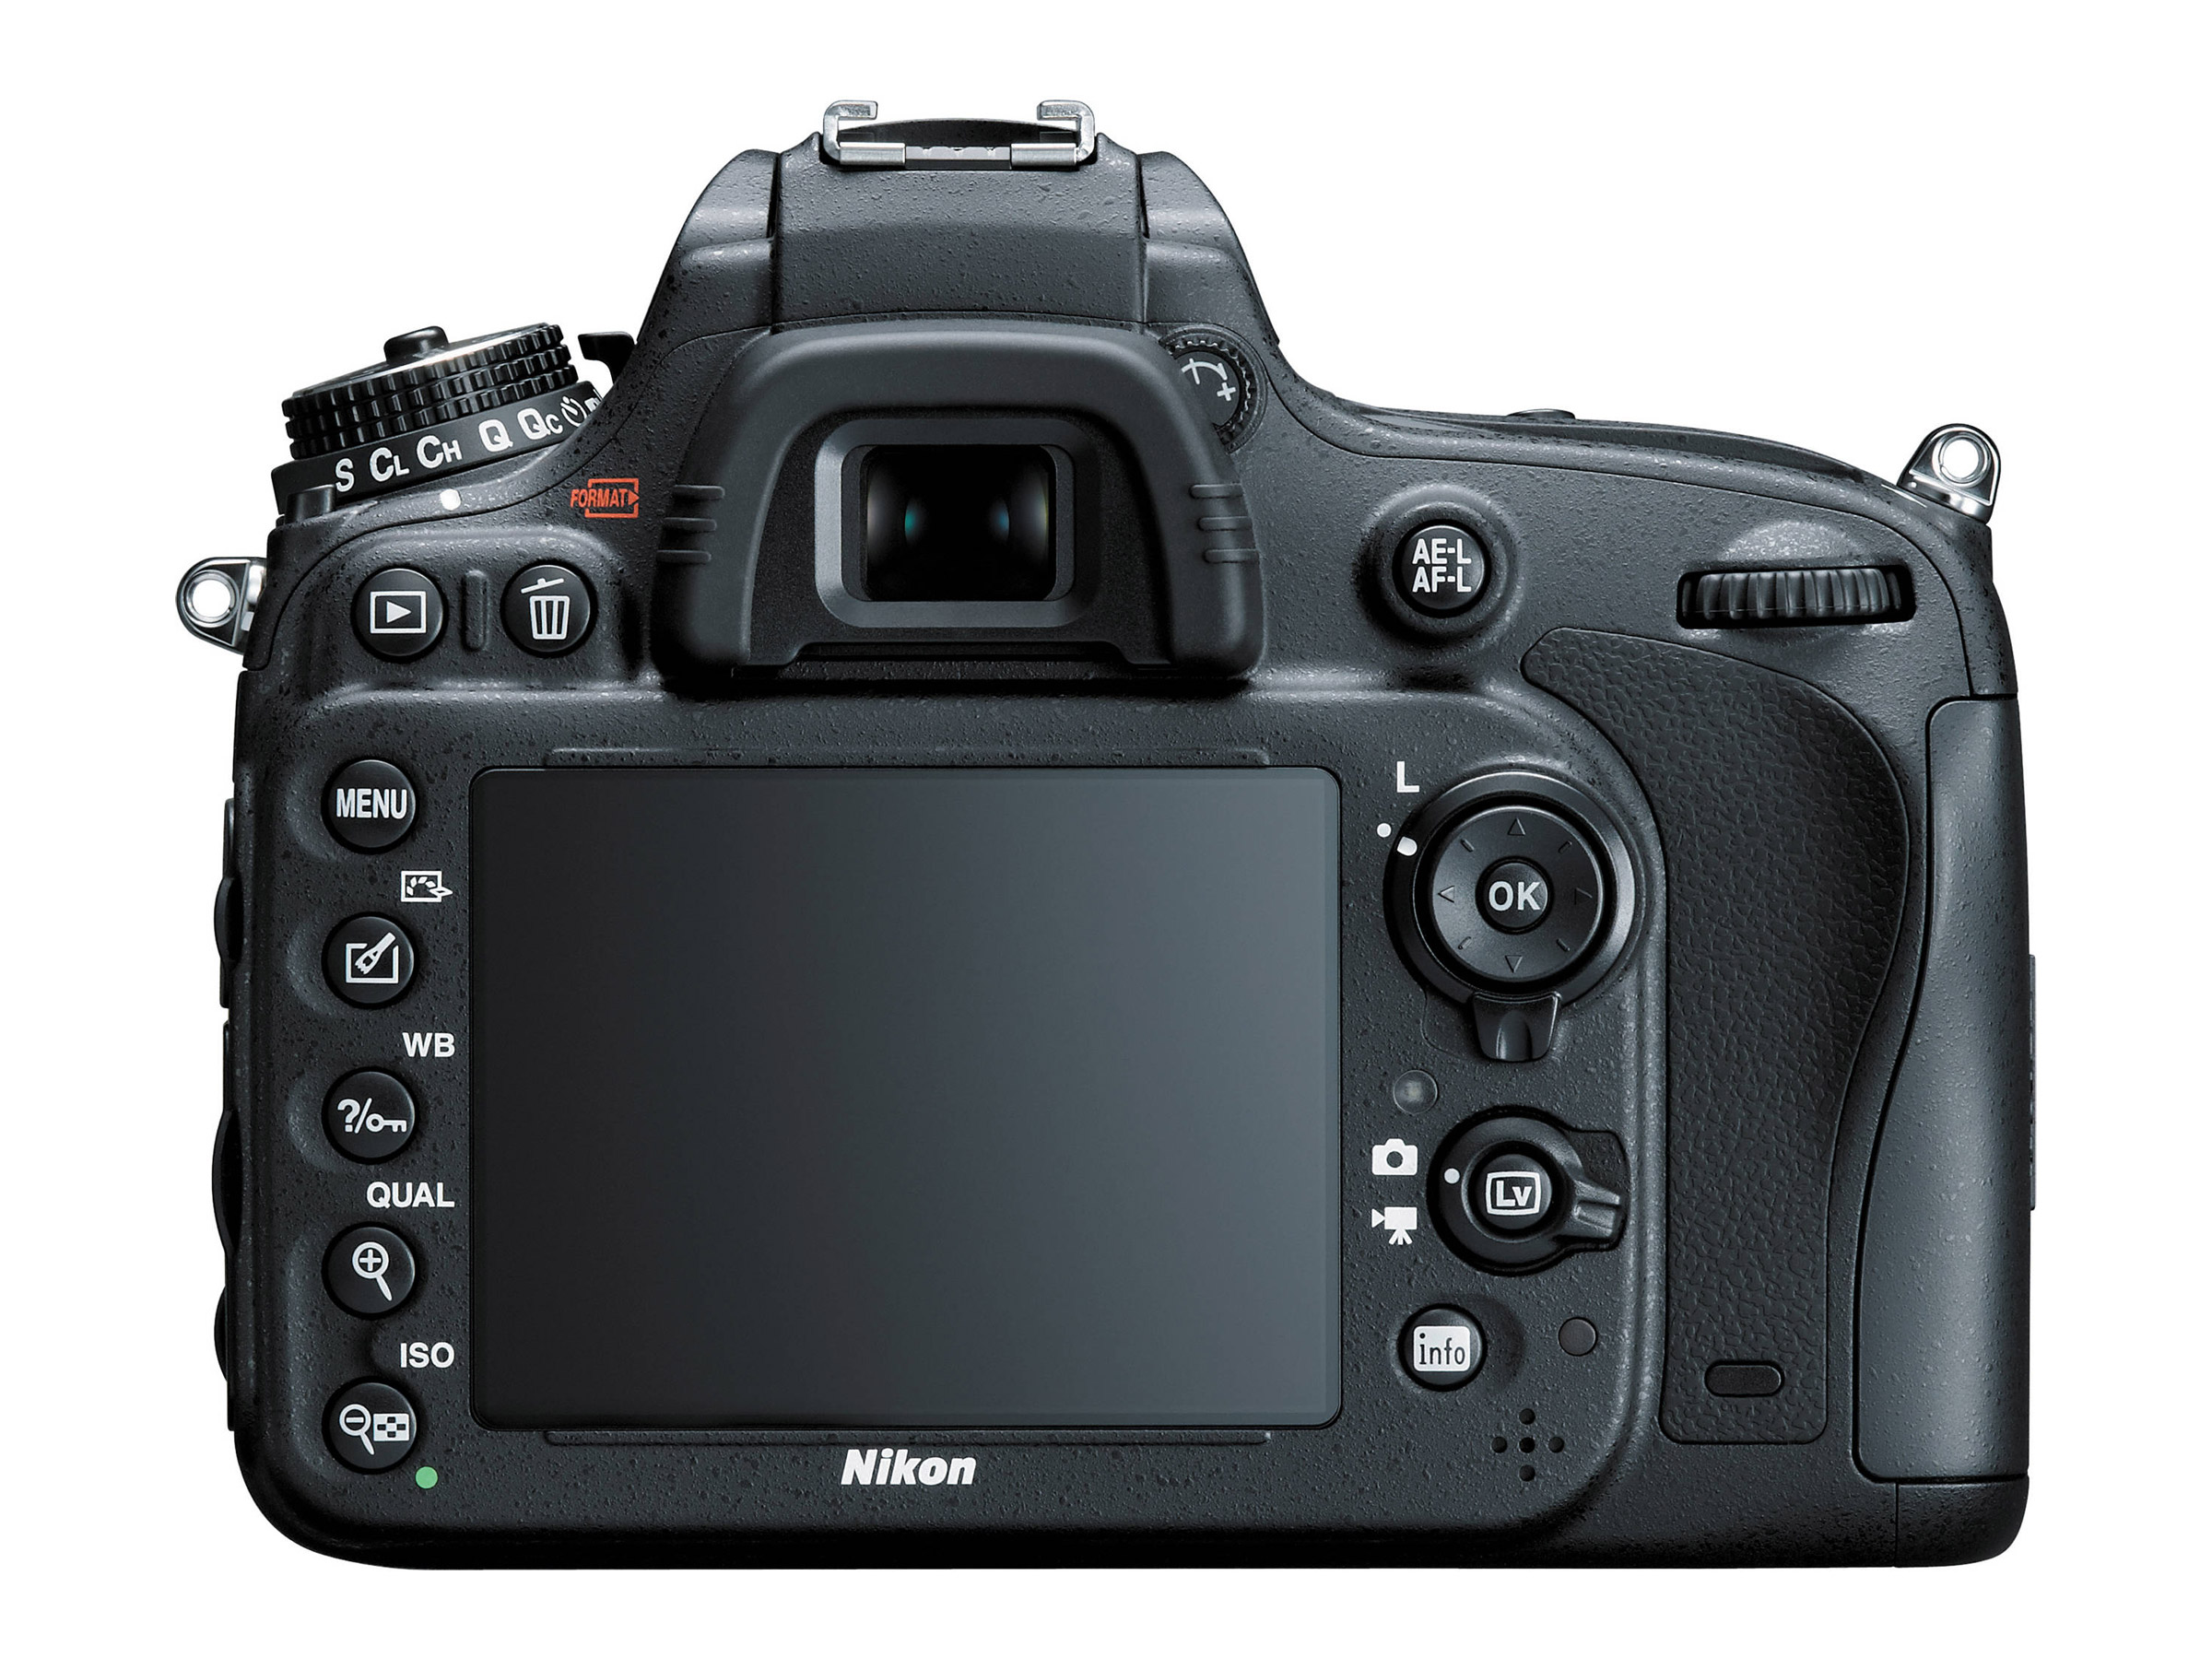 Nikon D610 Specifications And Opinions Juzaphoto Kabel Data Usb D40 D40x D50 D60 D70 D70s D80 D90 D100 D200 D300 D300s D600 D700 D3000 D3100 D7000